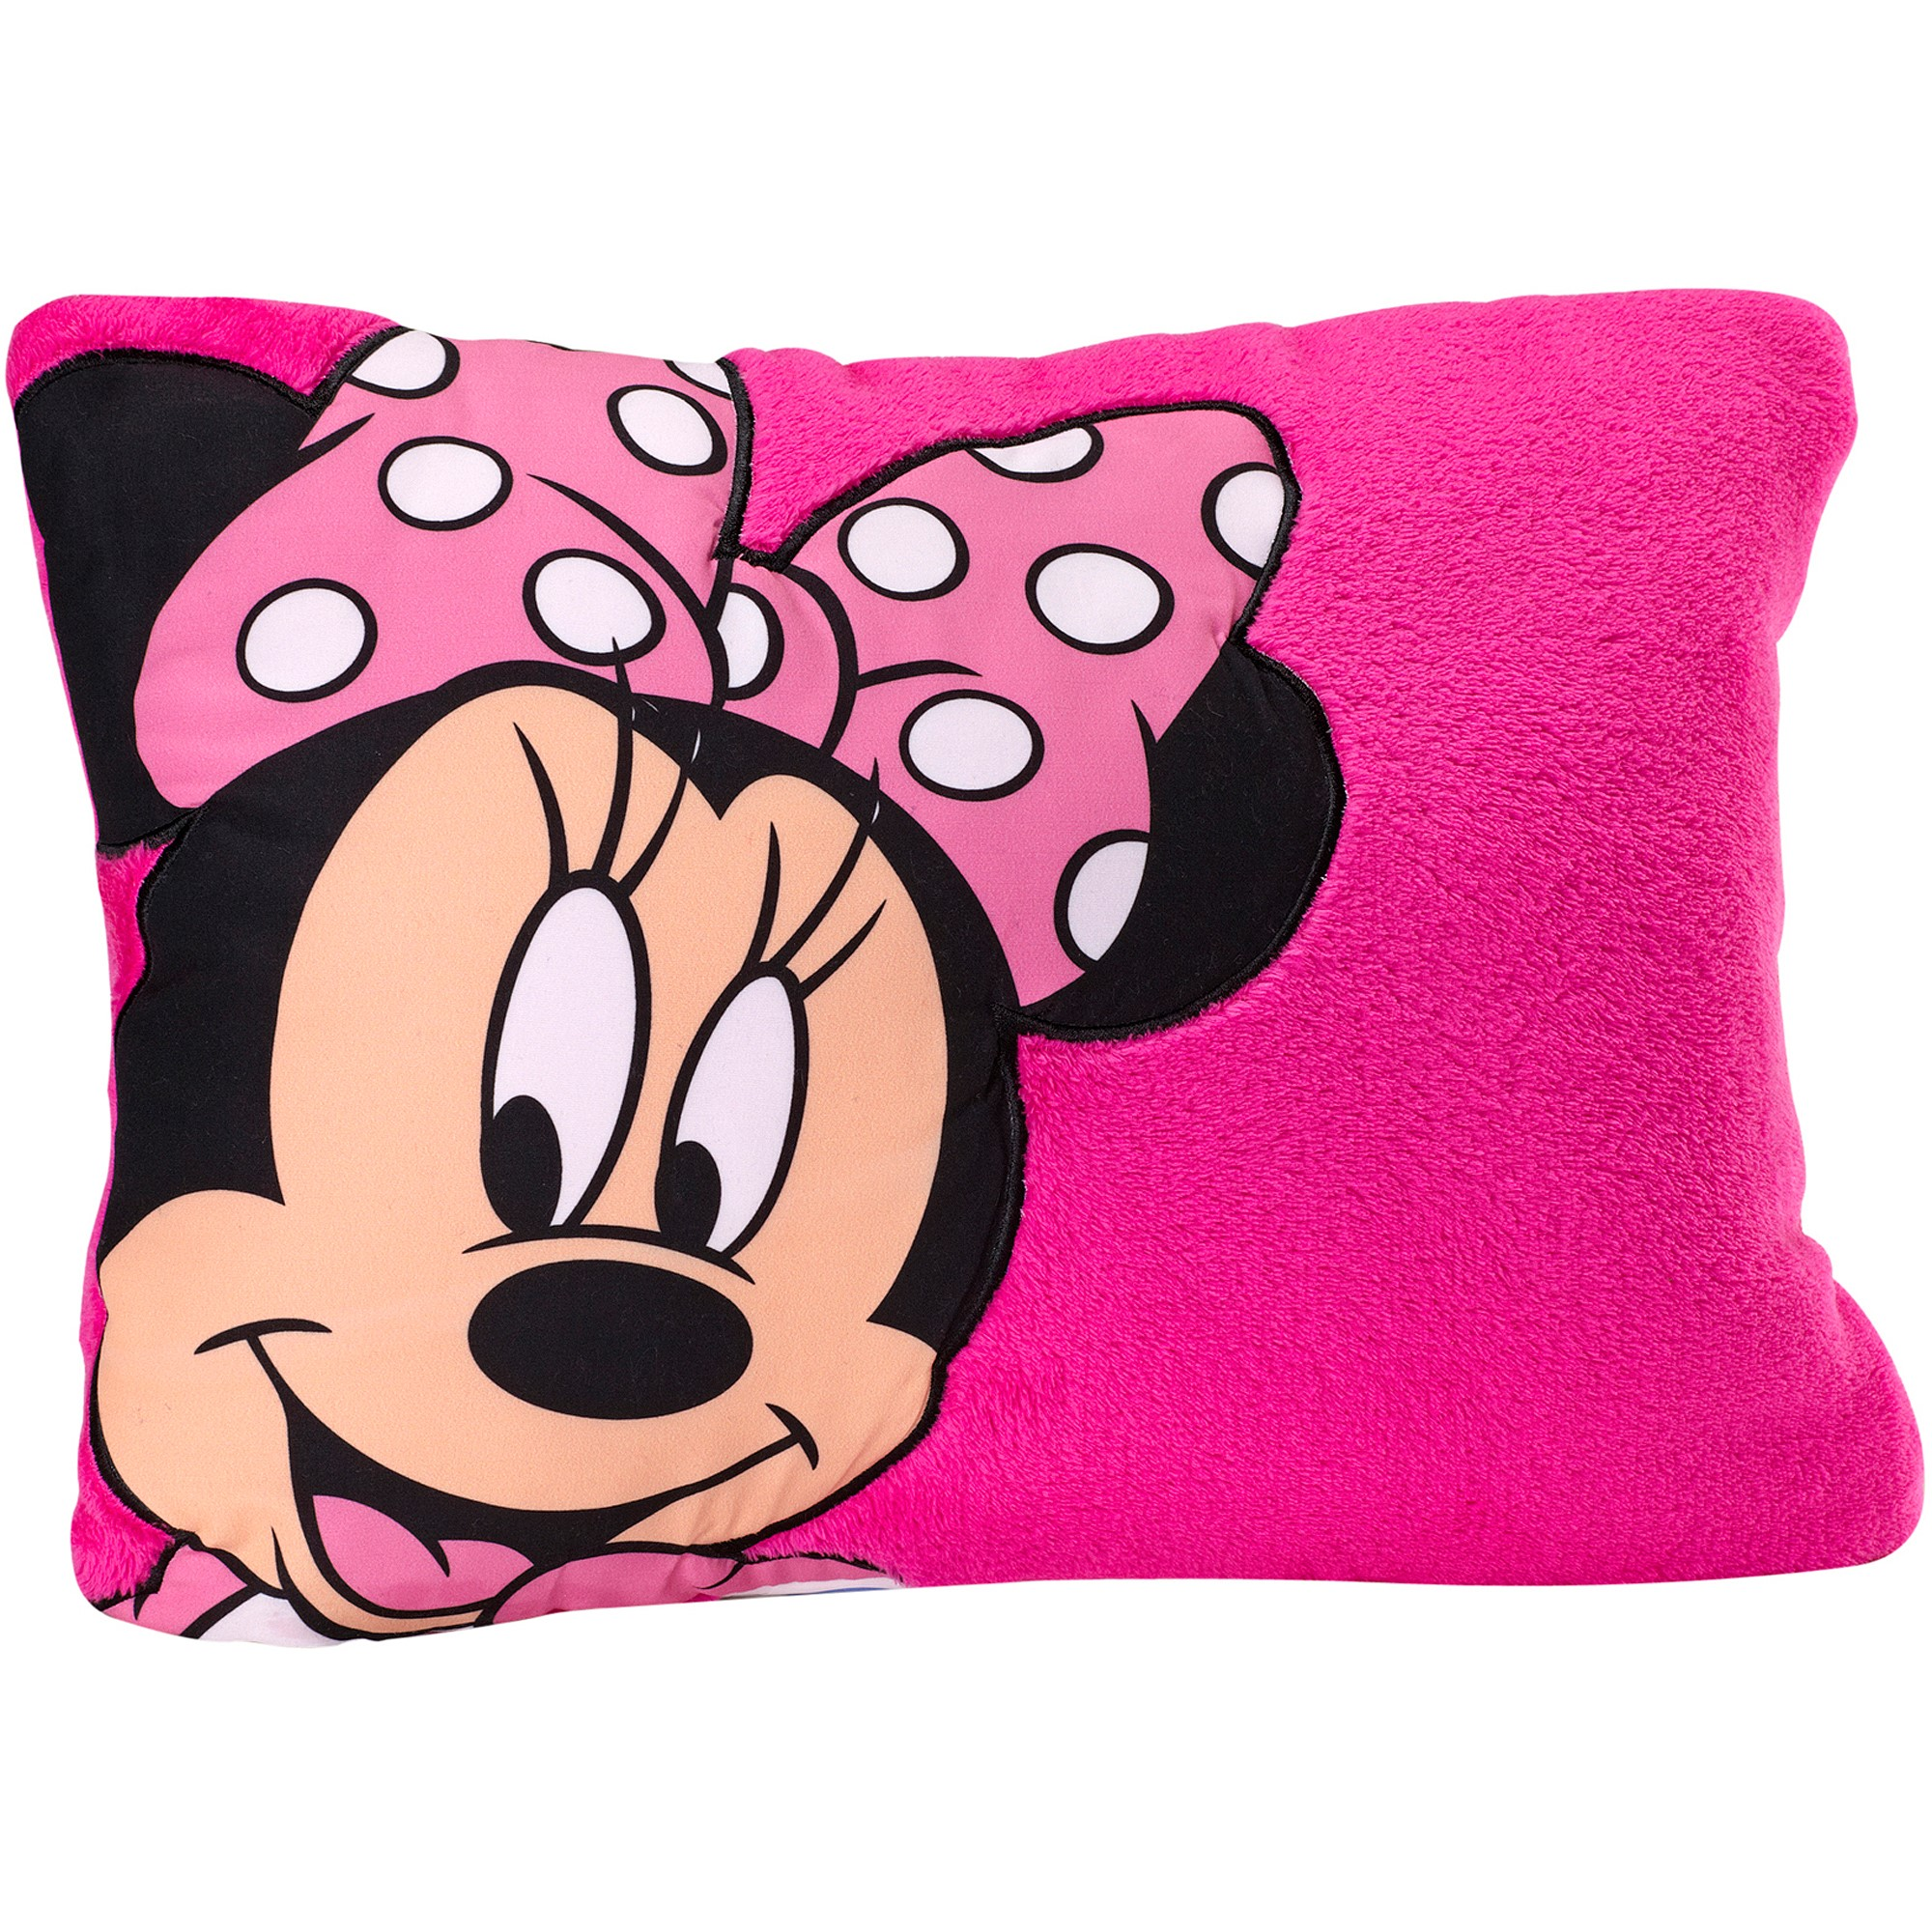 Disney Minnie Mouse Pink Decorative Pillow by Crown Crafts Infant Products Inc